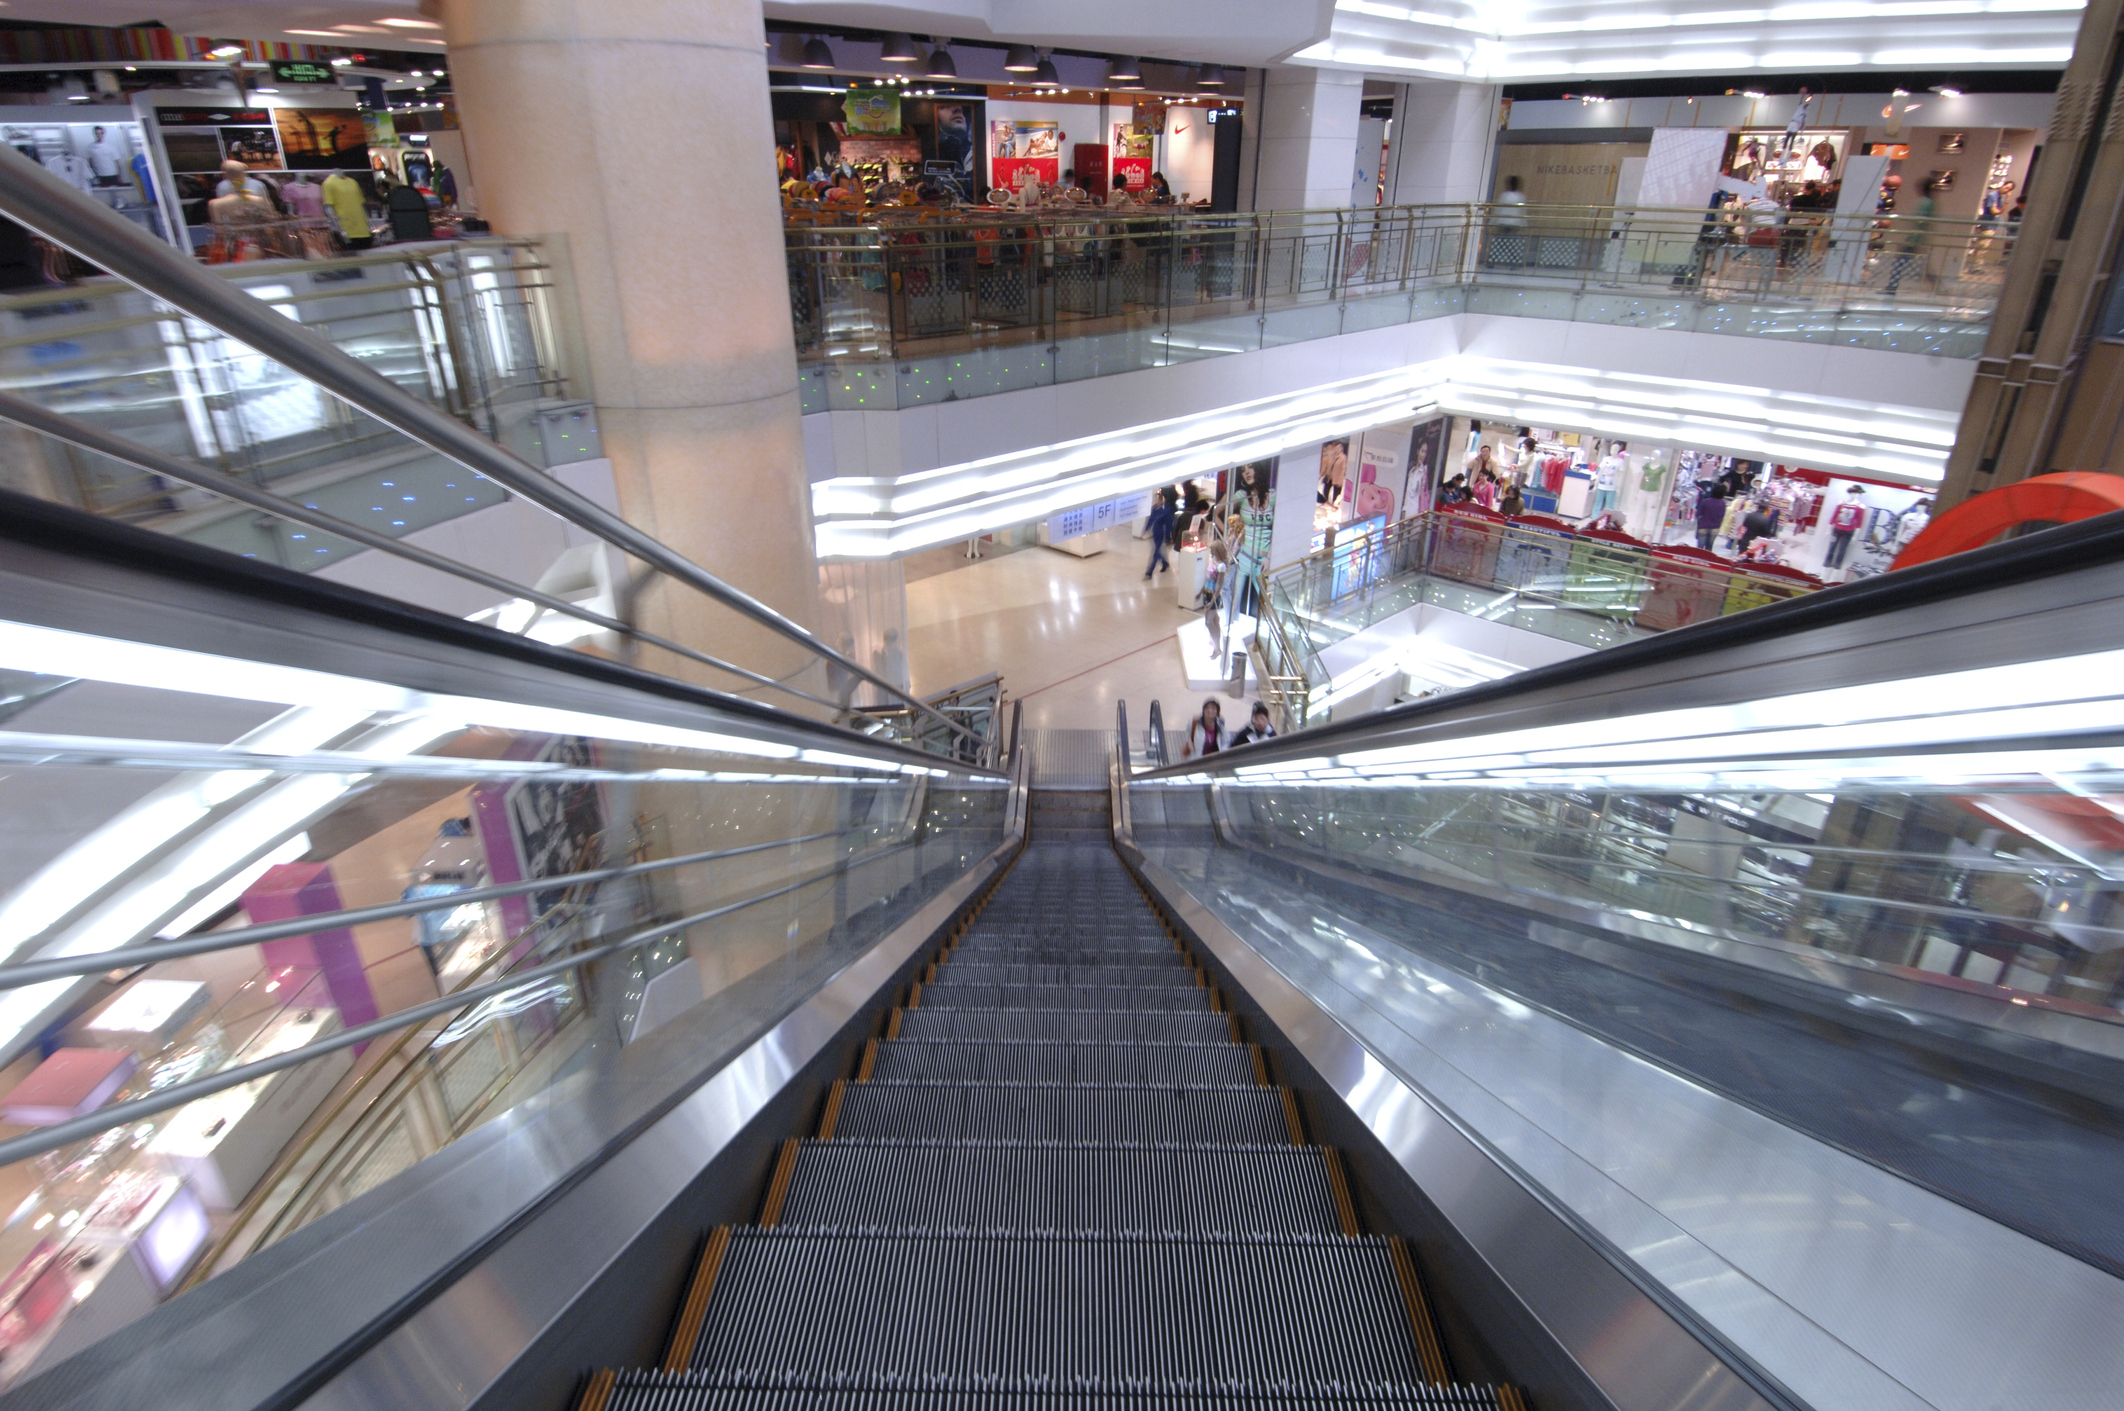 The future of retail and office space is up in the air, and proptech investors are optimistic